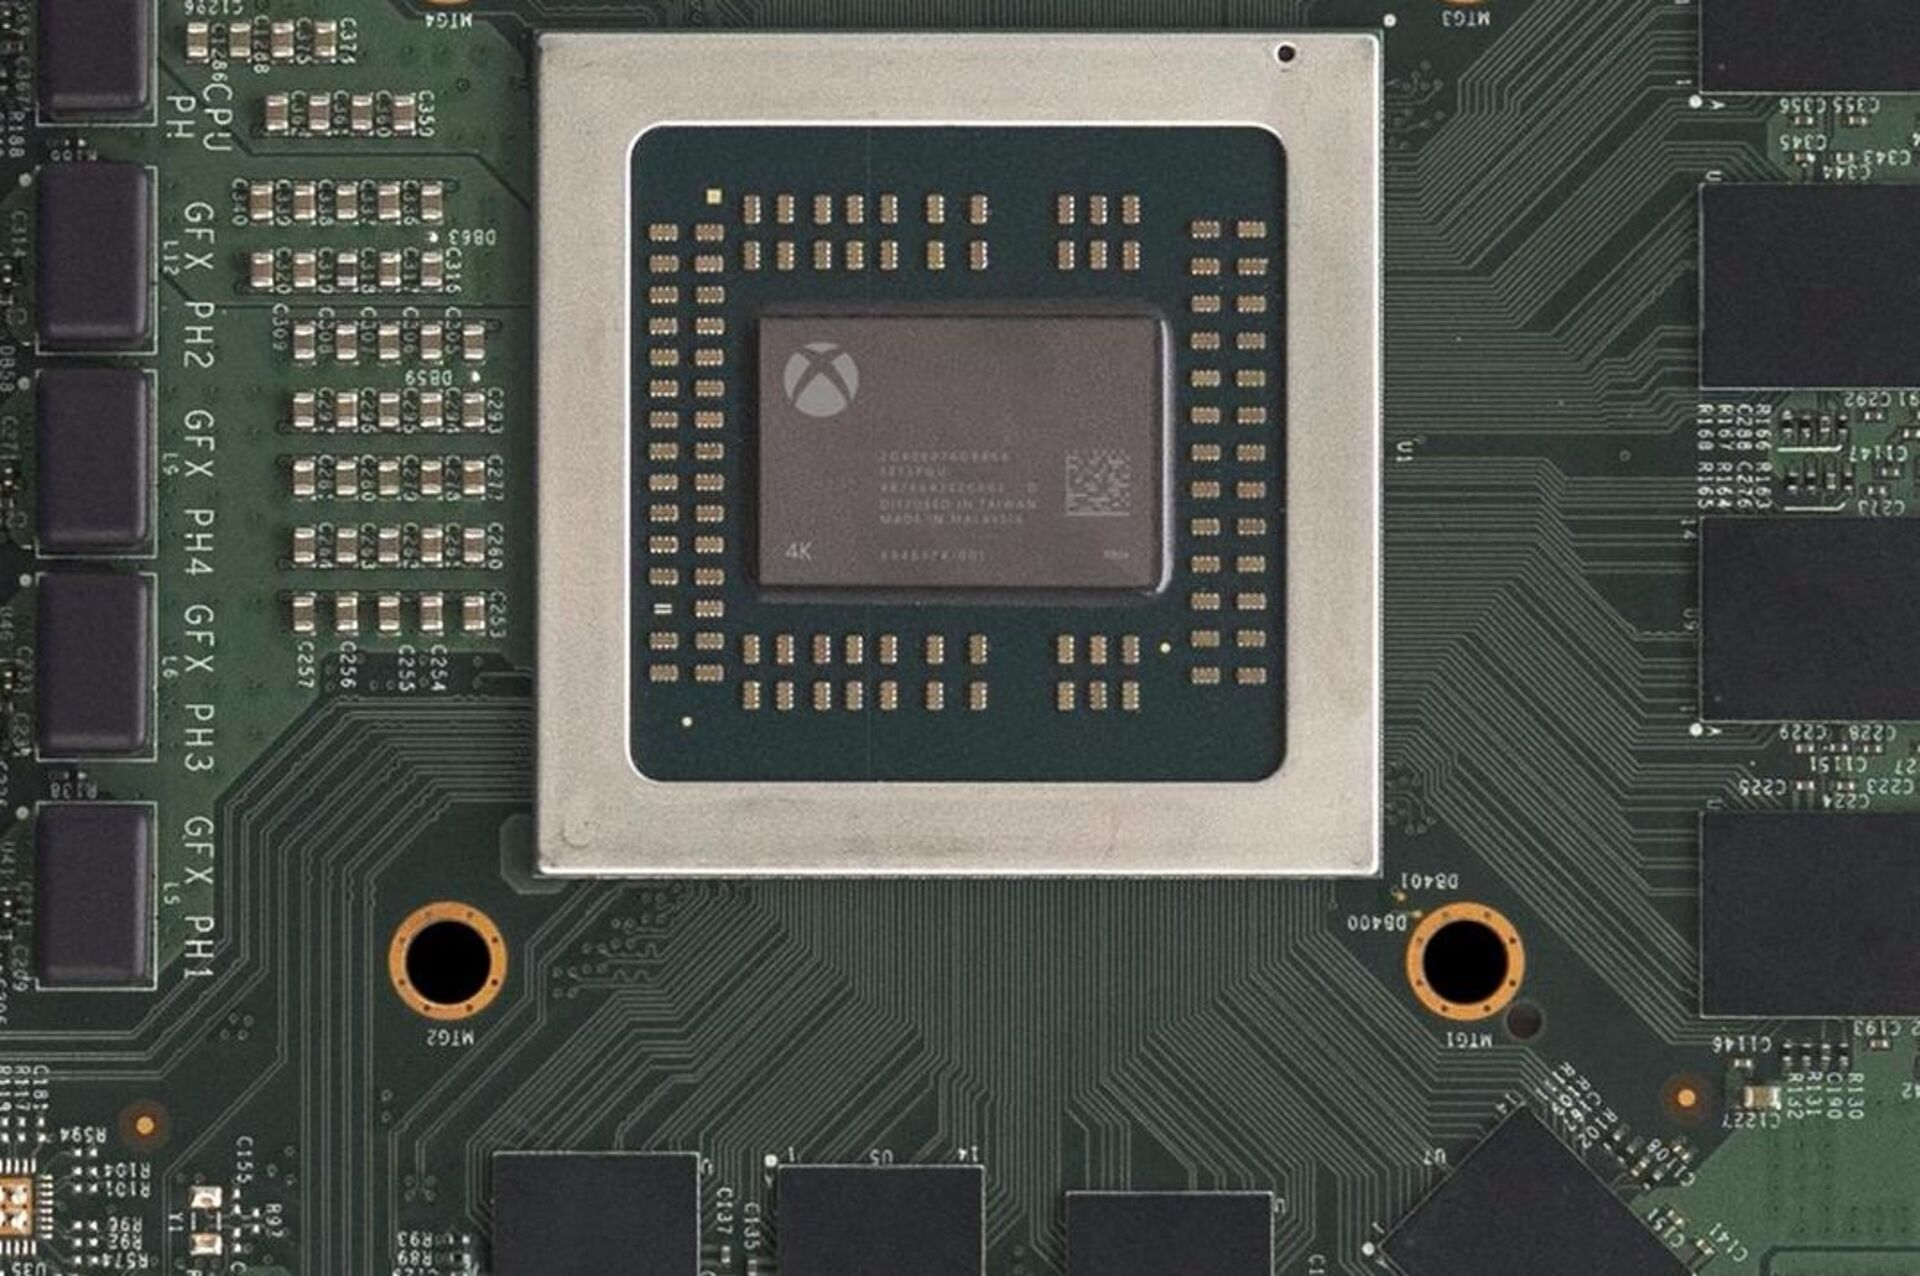 Project Scorpio supports FreeSync and next-gen HDMI